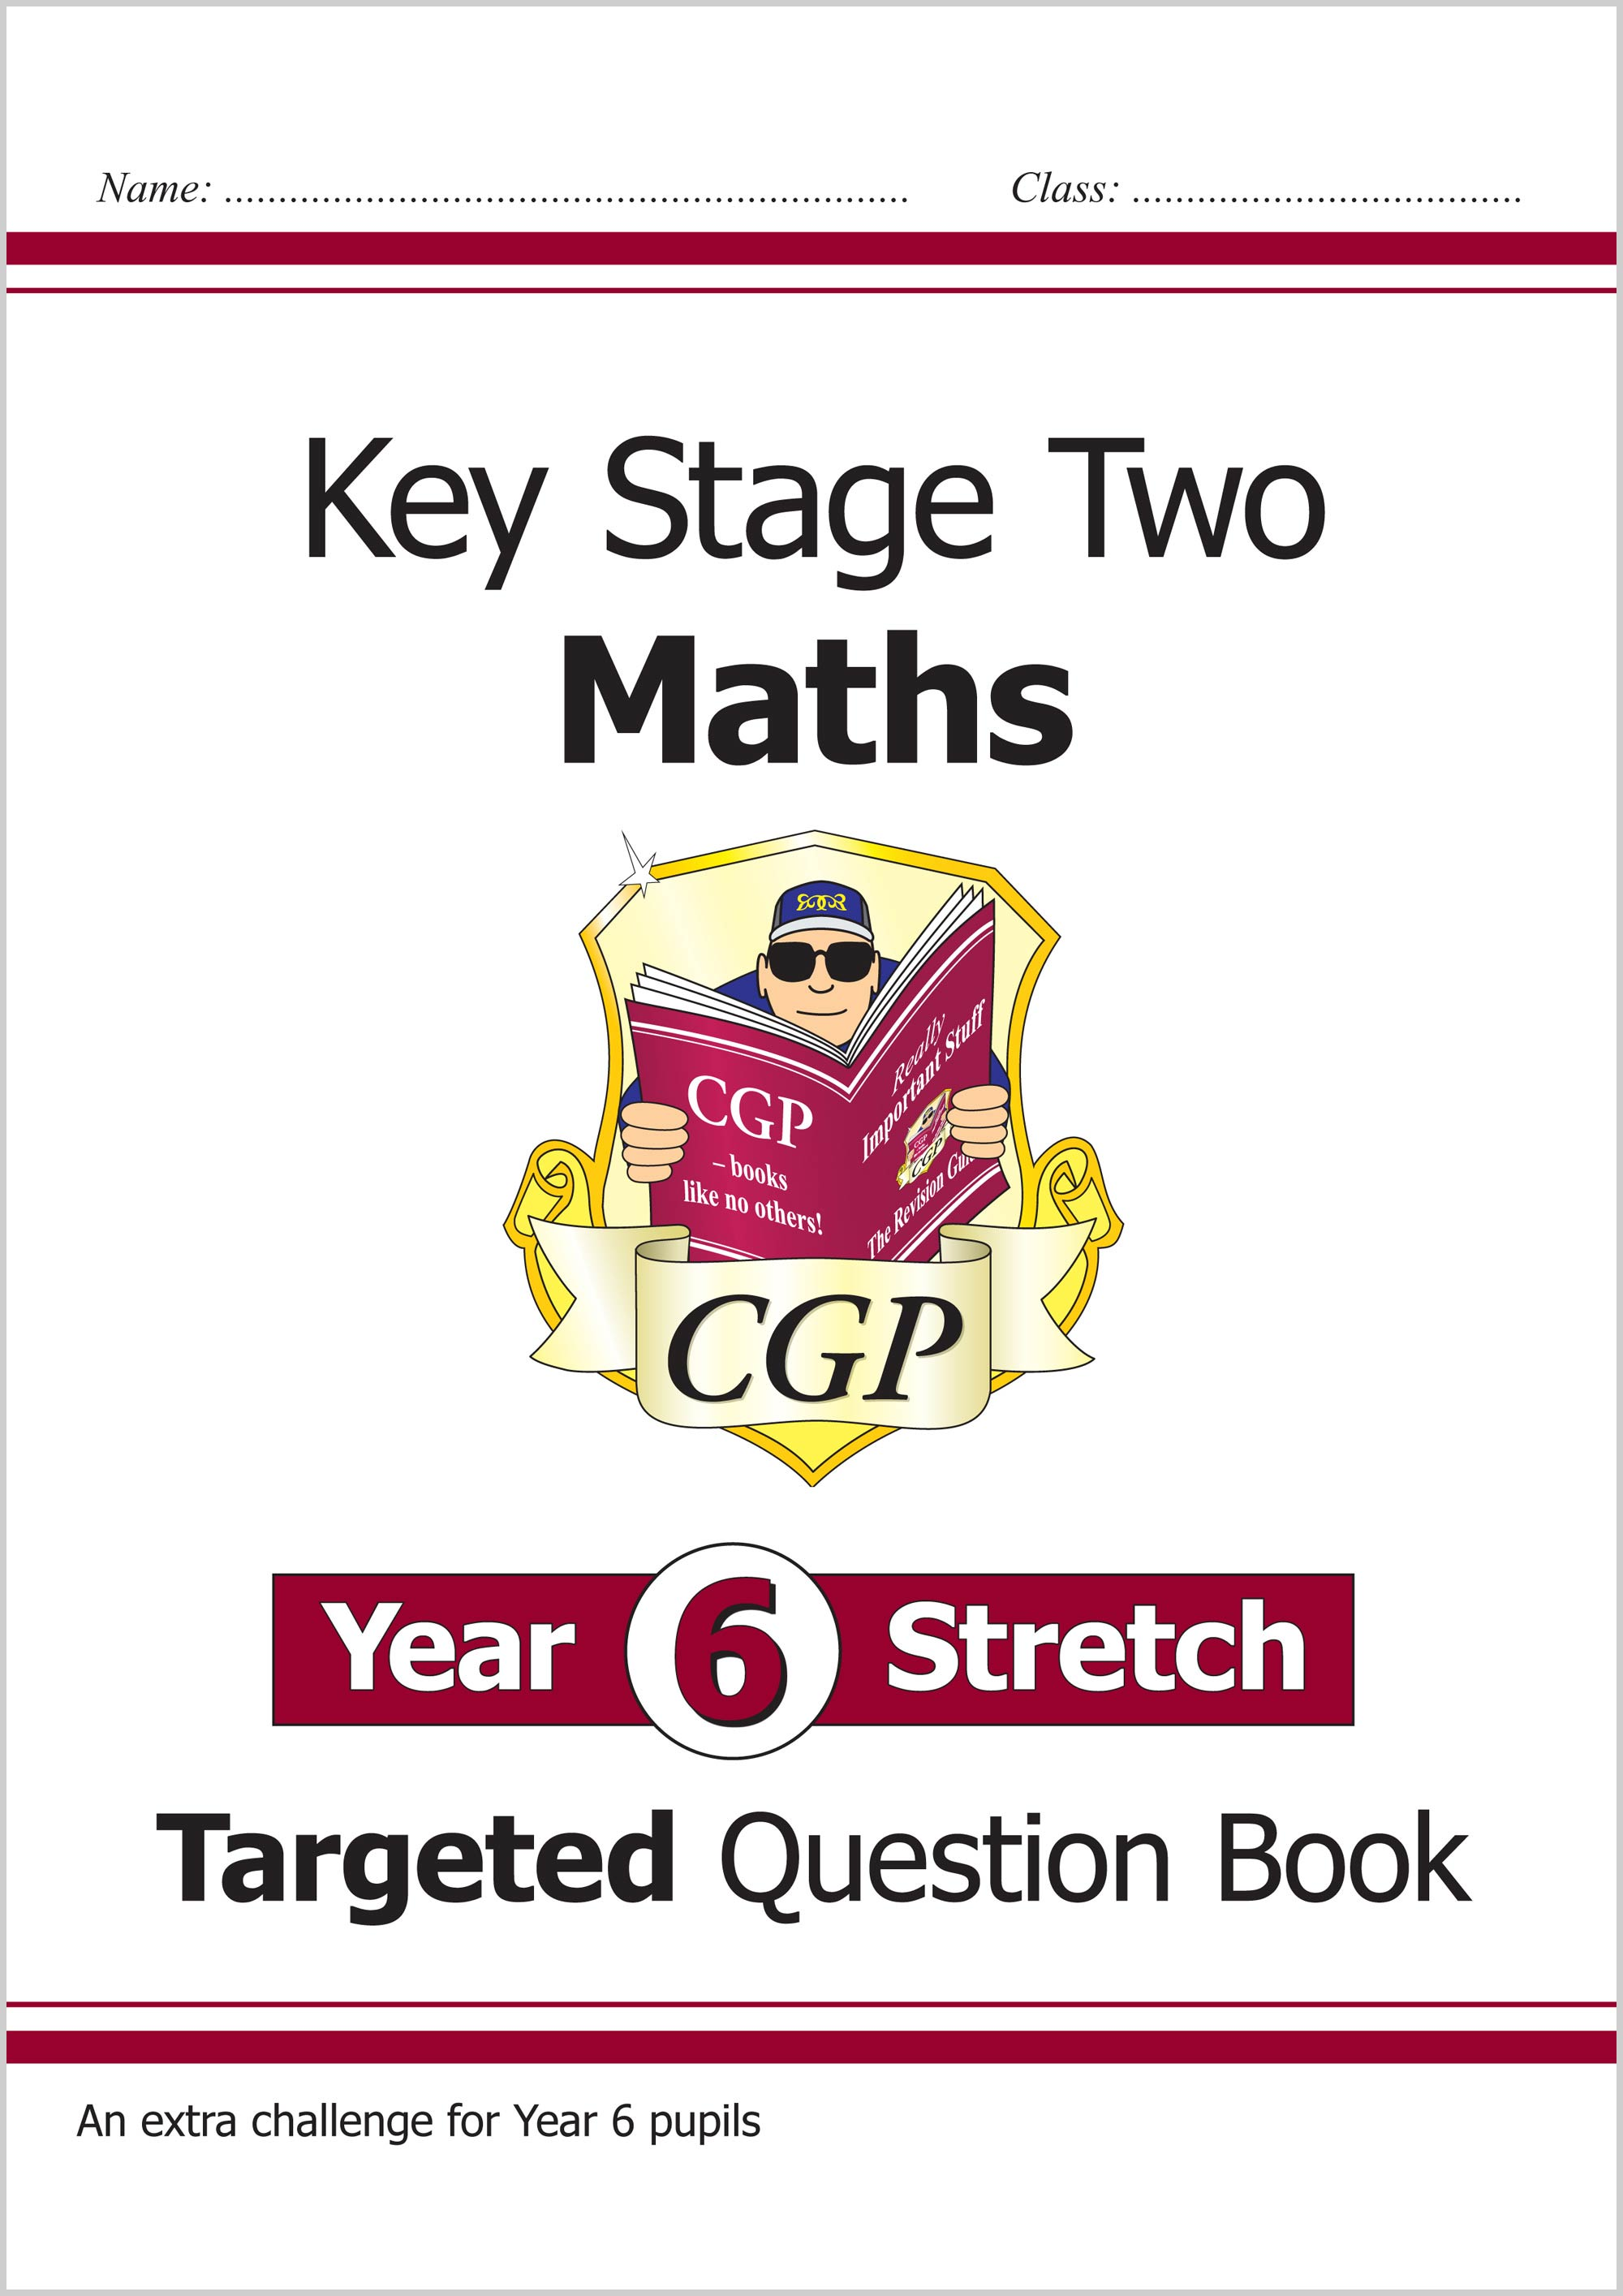 M6HQ22 - KS2 Maths Targeted Question Book: Challenging Maths - Year 6 Stretch